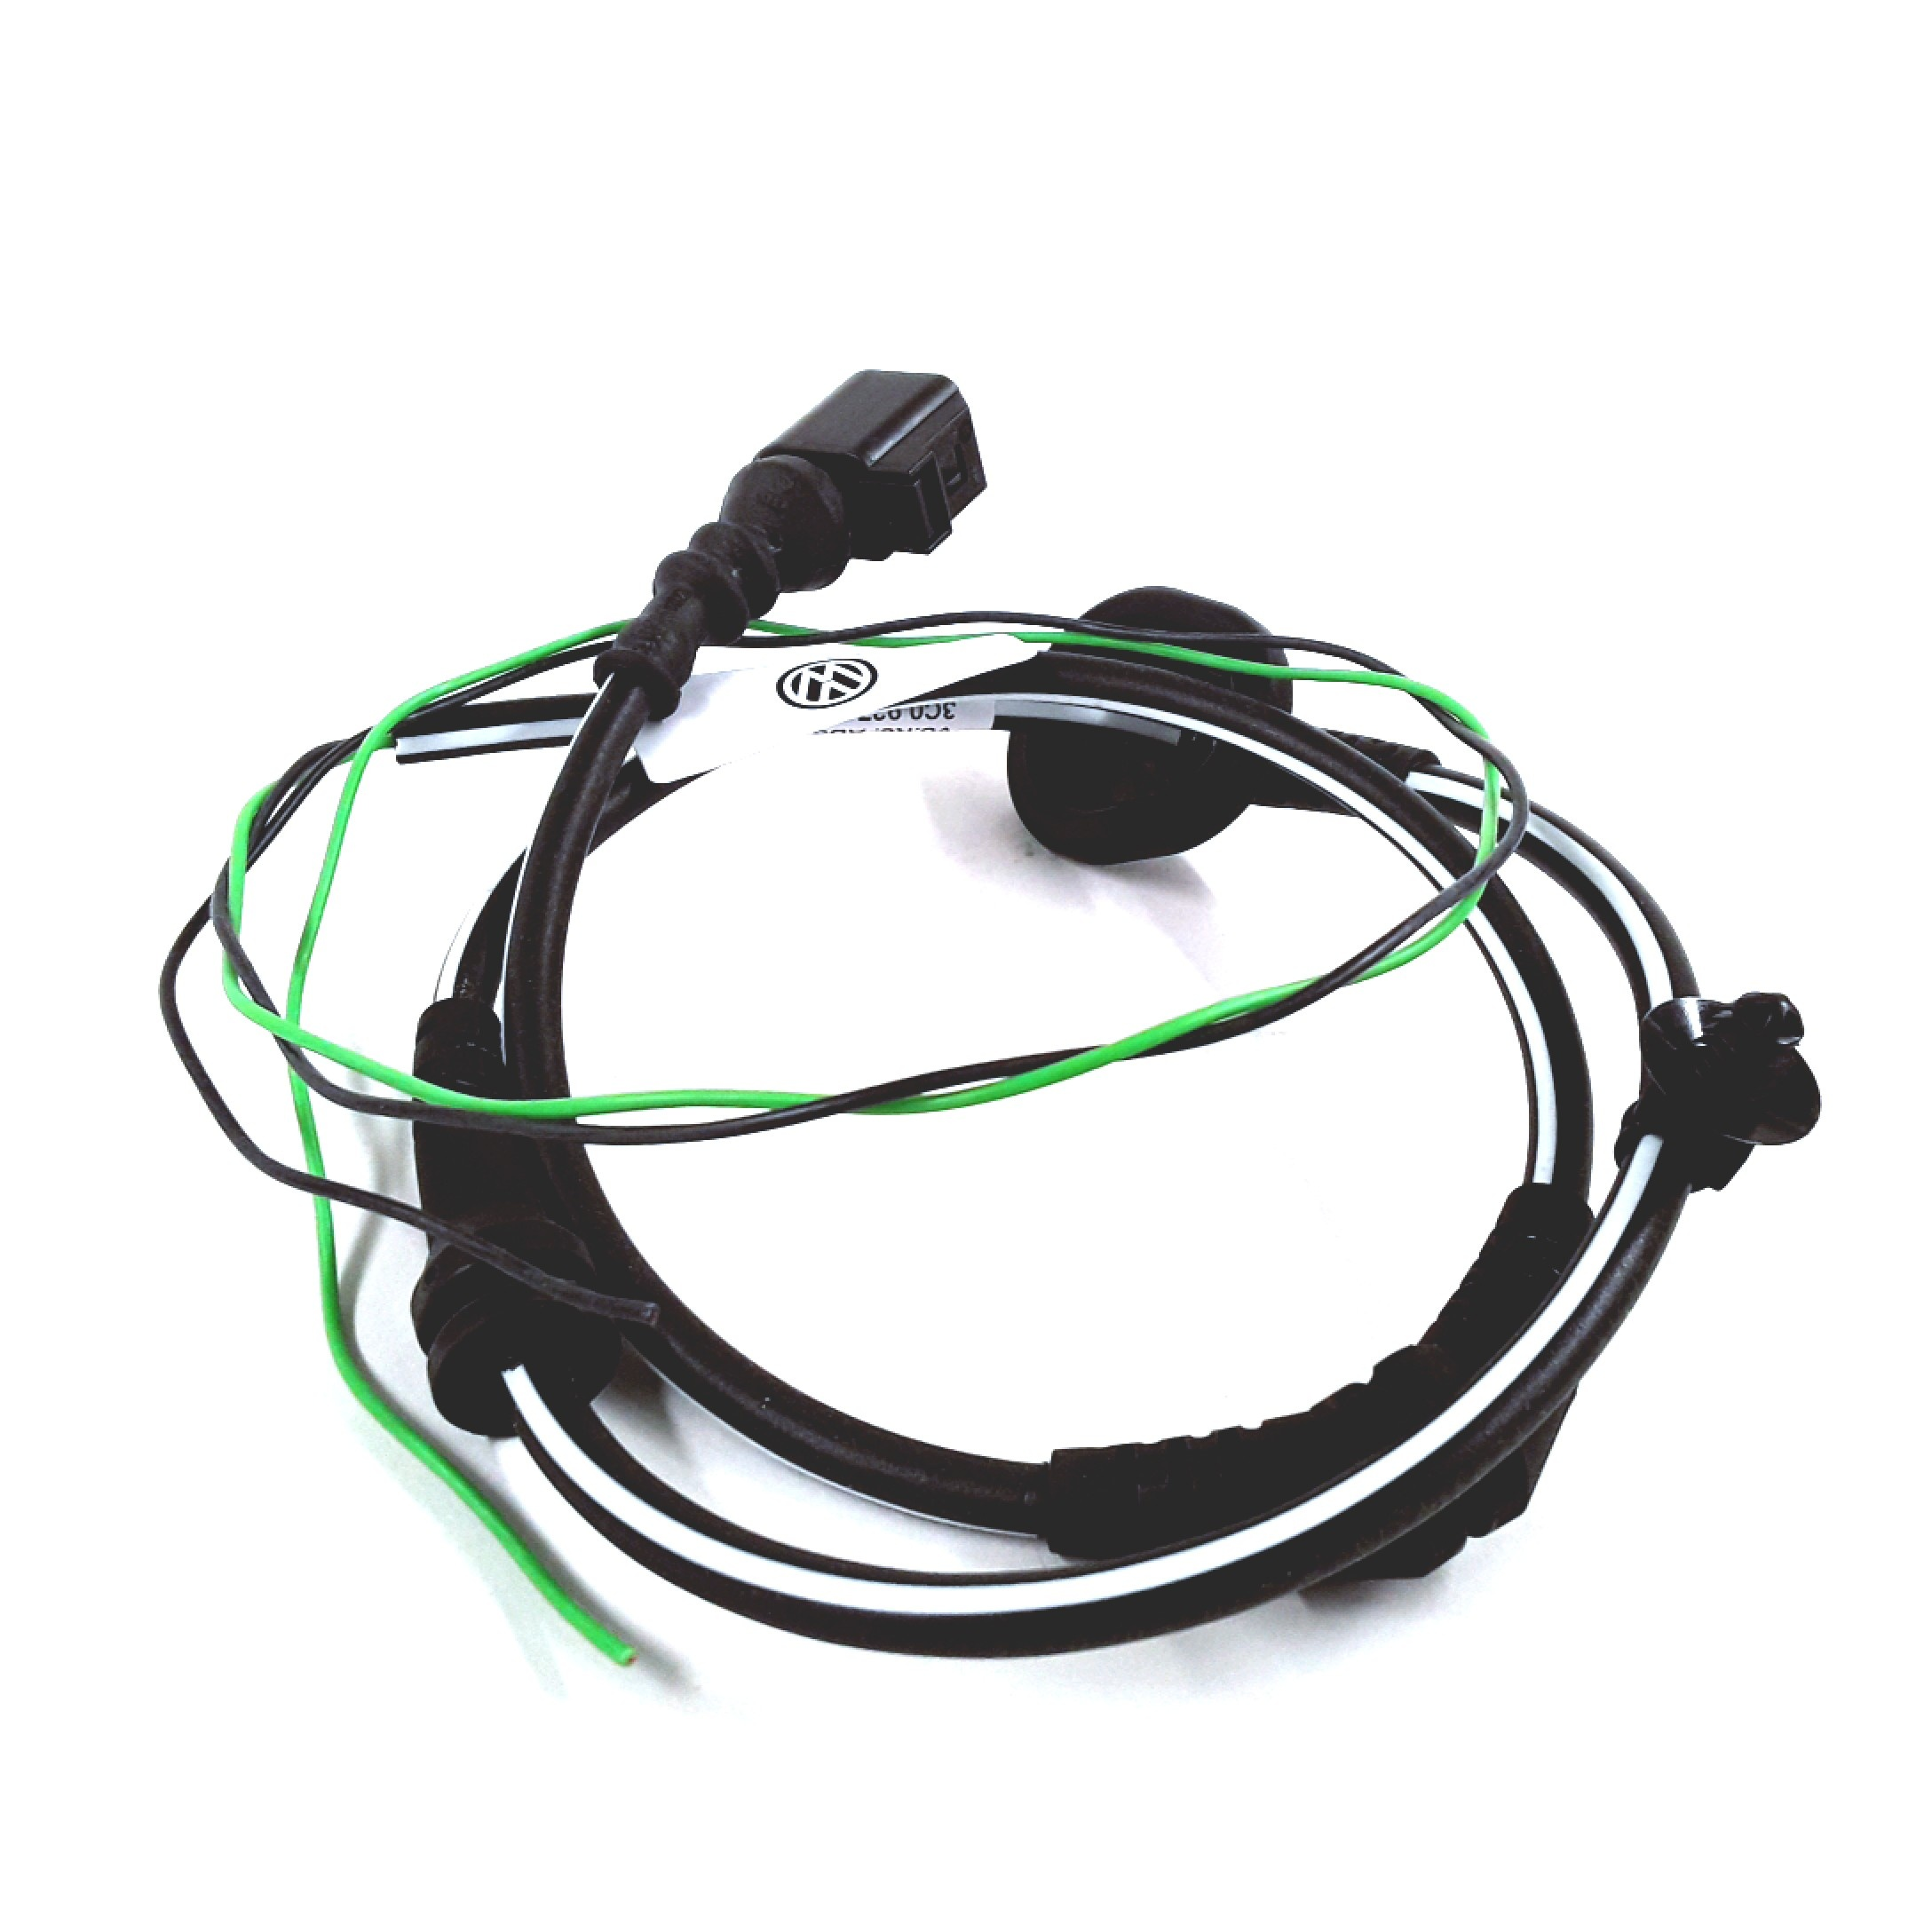 Vw Front Brake Sensor Wiring Harness Diagrams For 72 Bug 2011 Volkswagen Cc Sport 2 0l M T Fwd Abs Wire